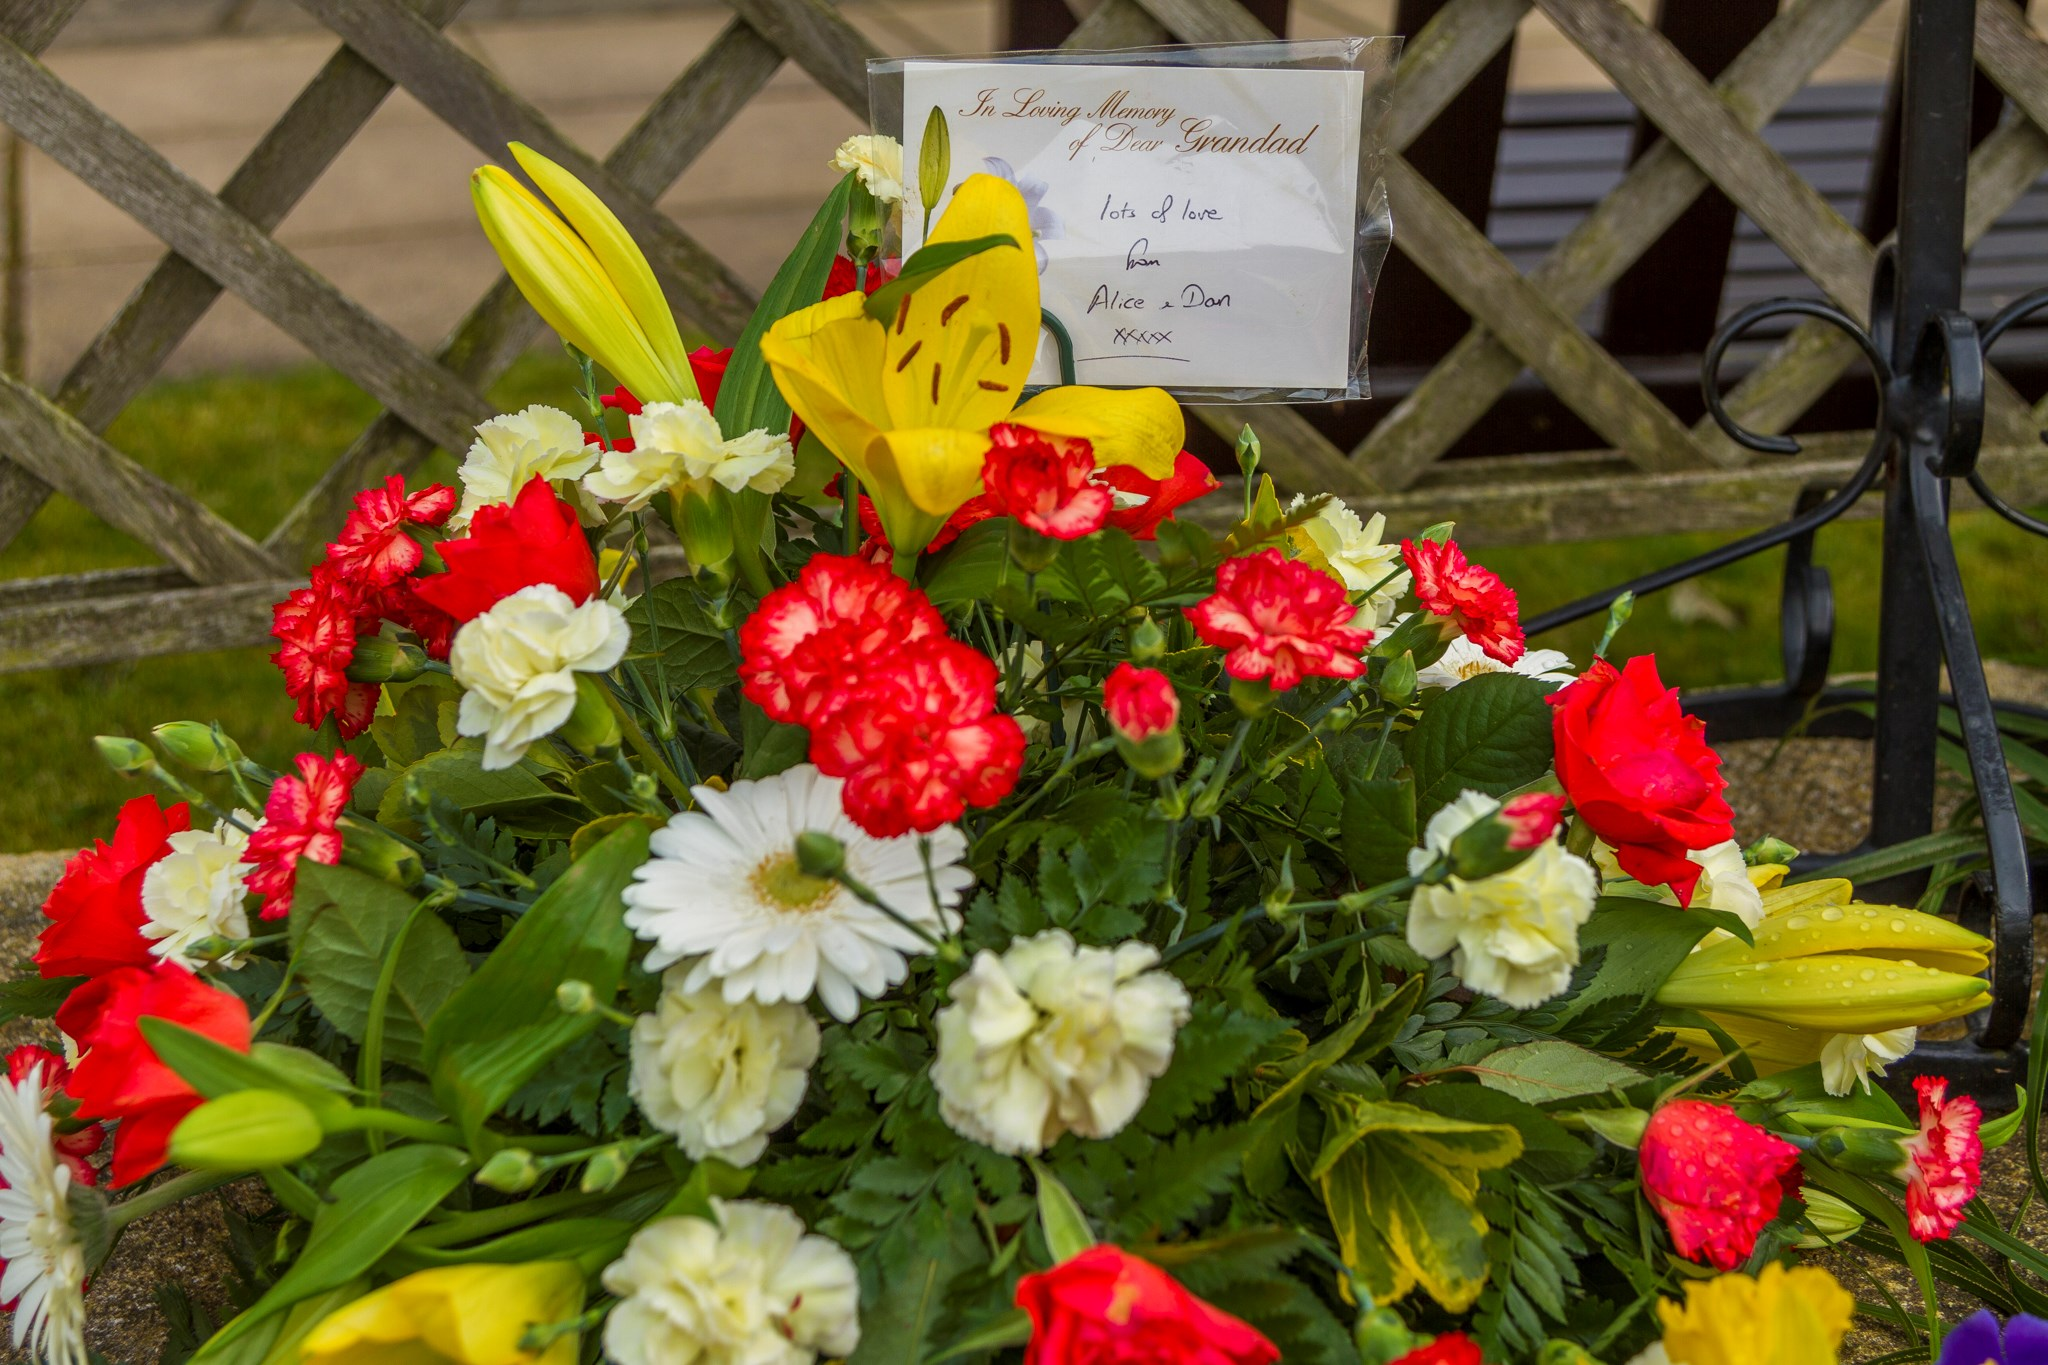 Floral tribute from Alice and Dan